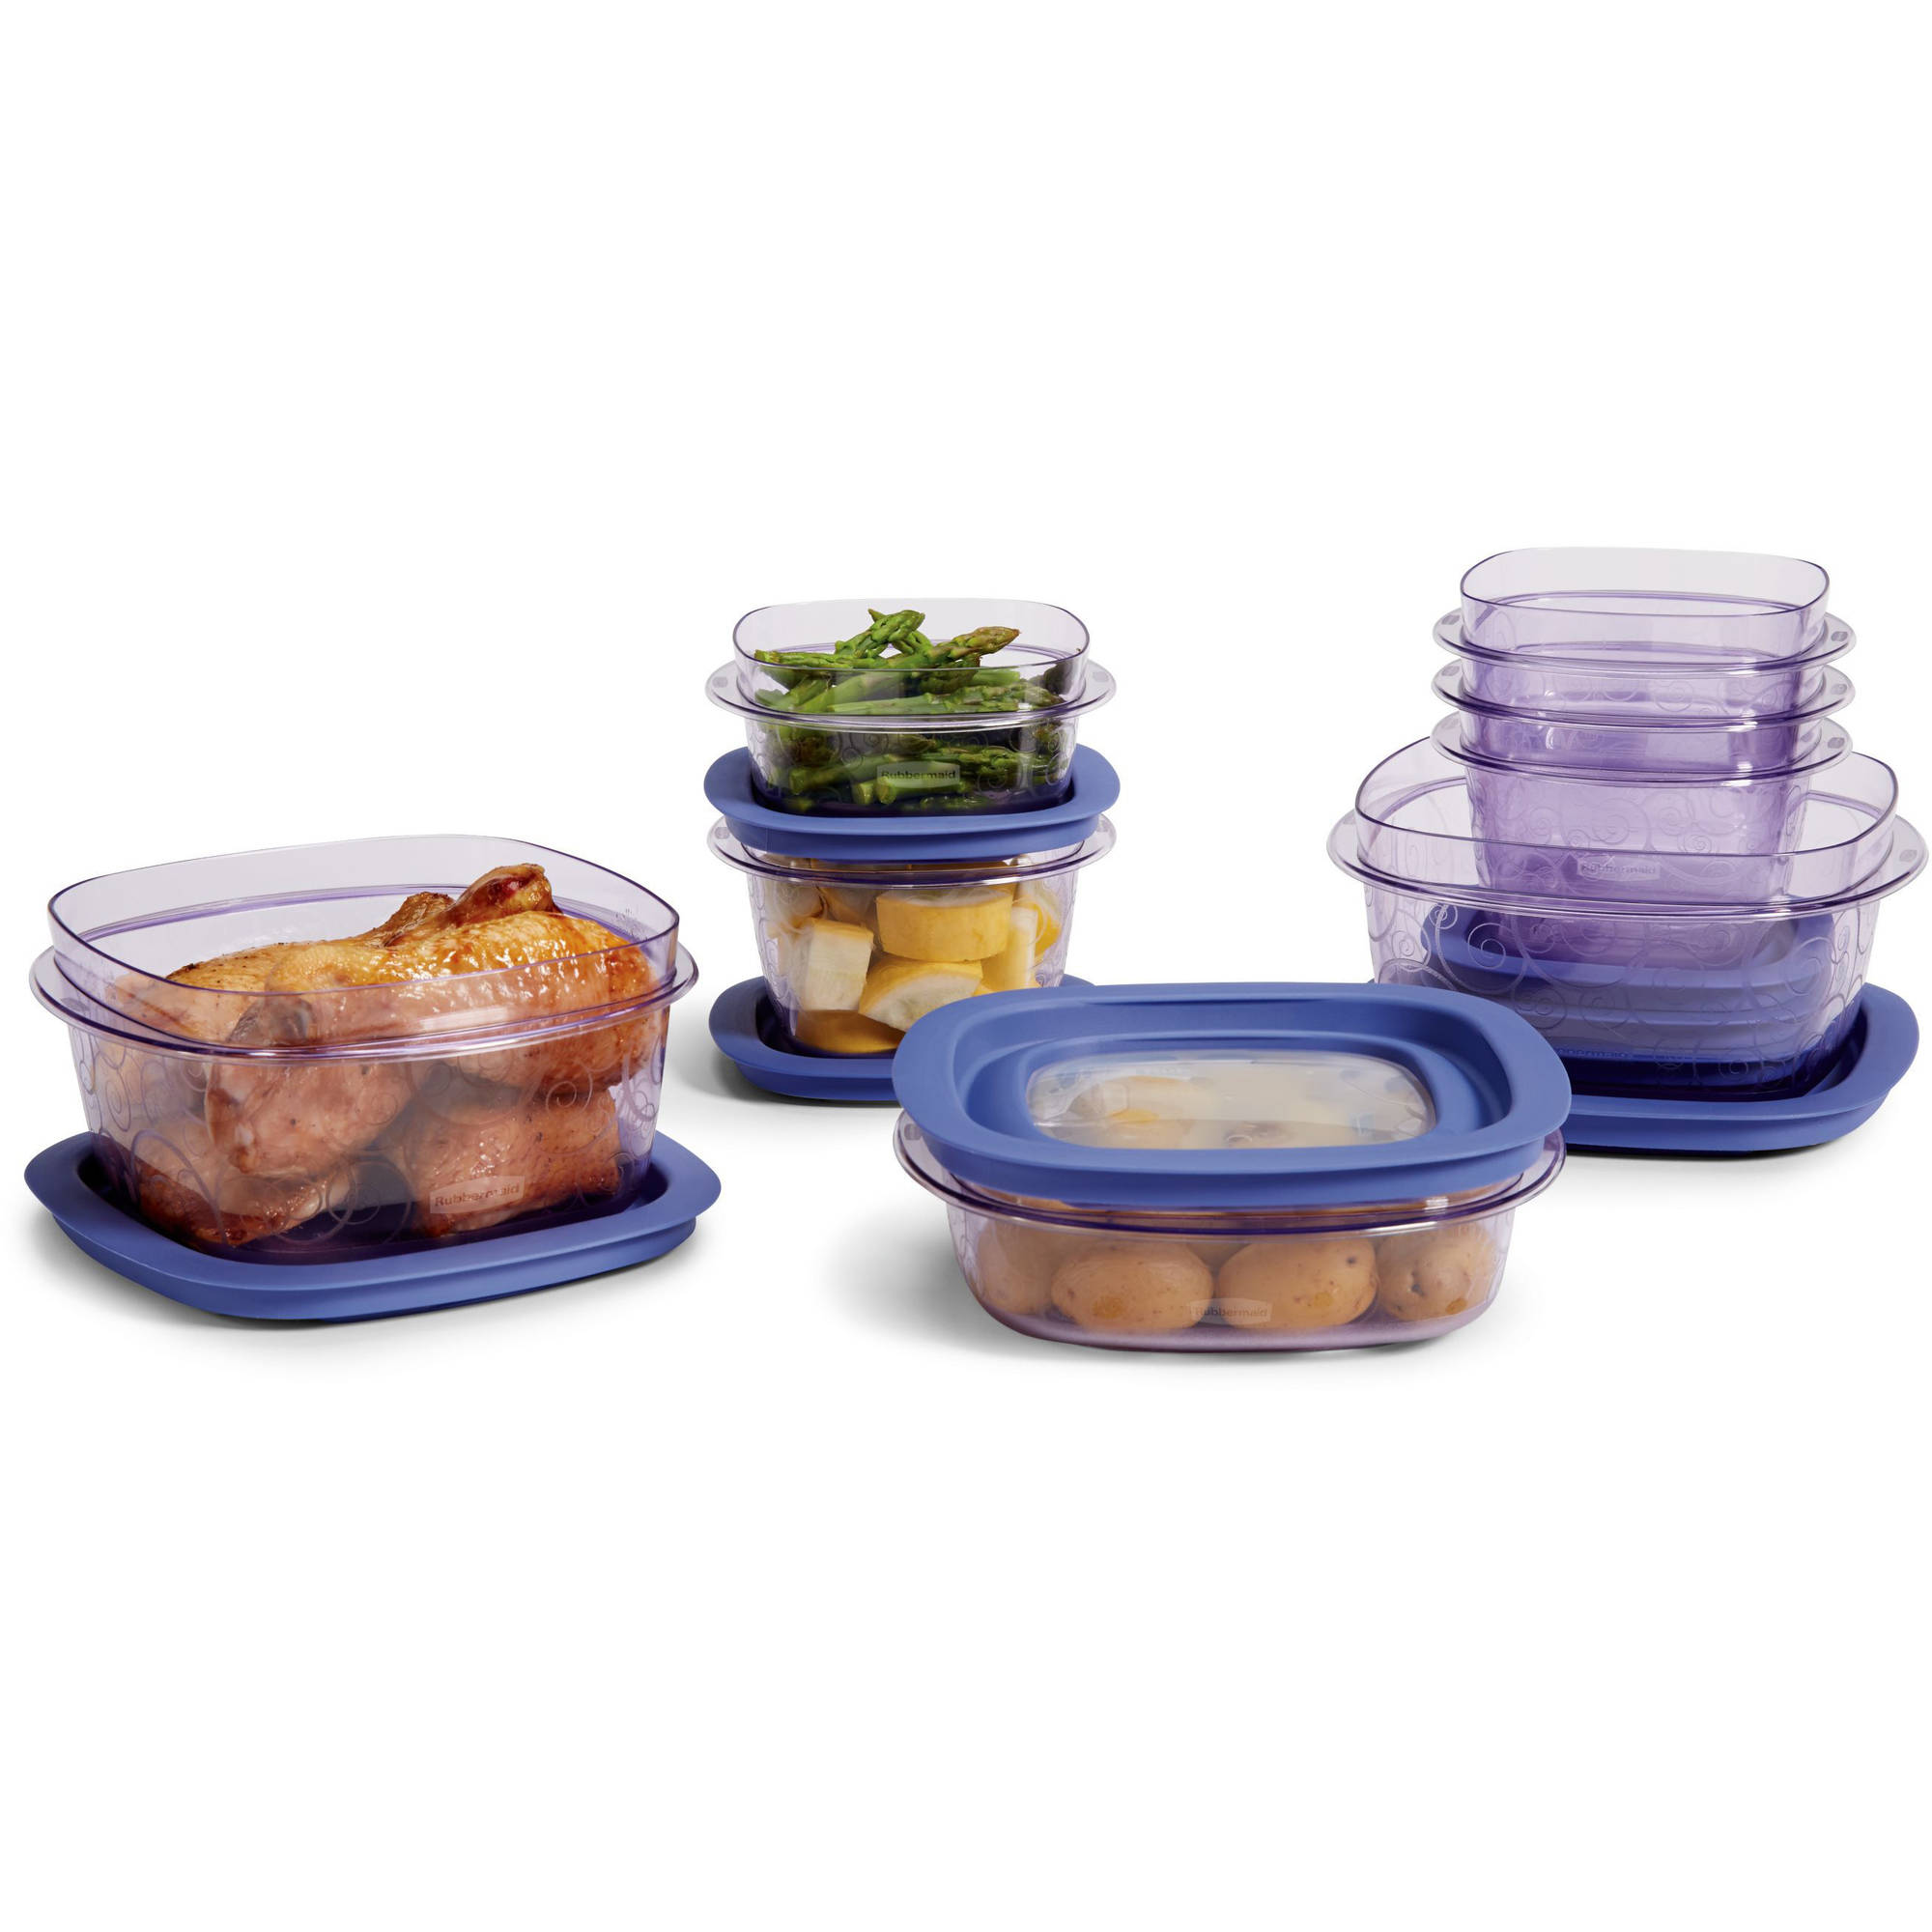 Rubbermaid Premier 16-Piece Set, Purple